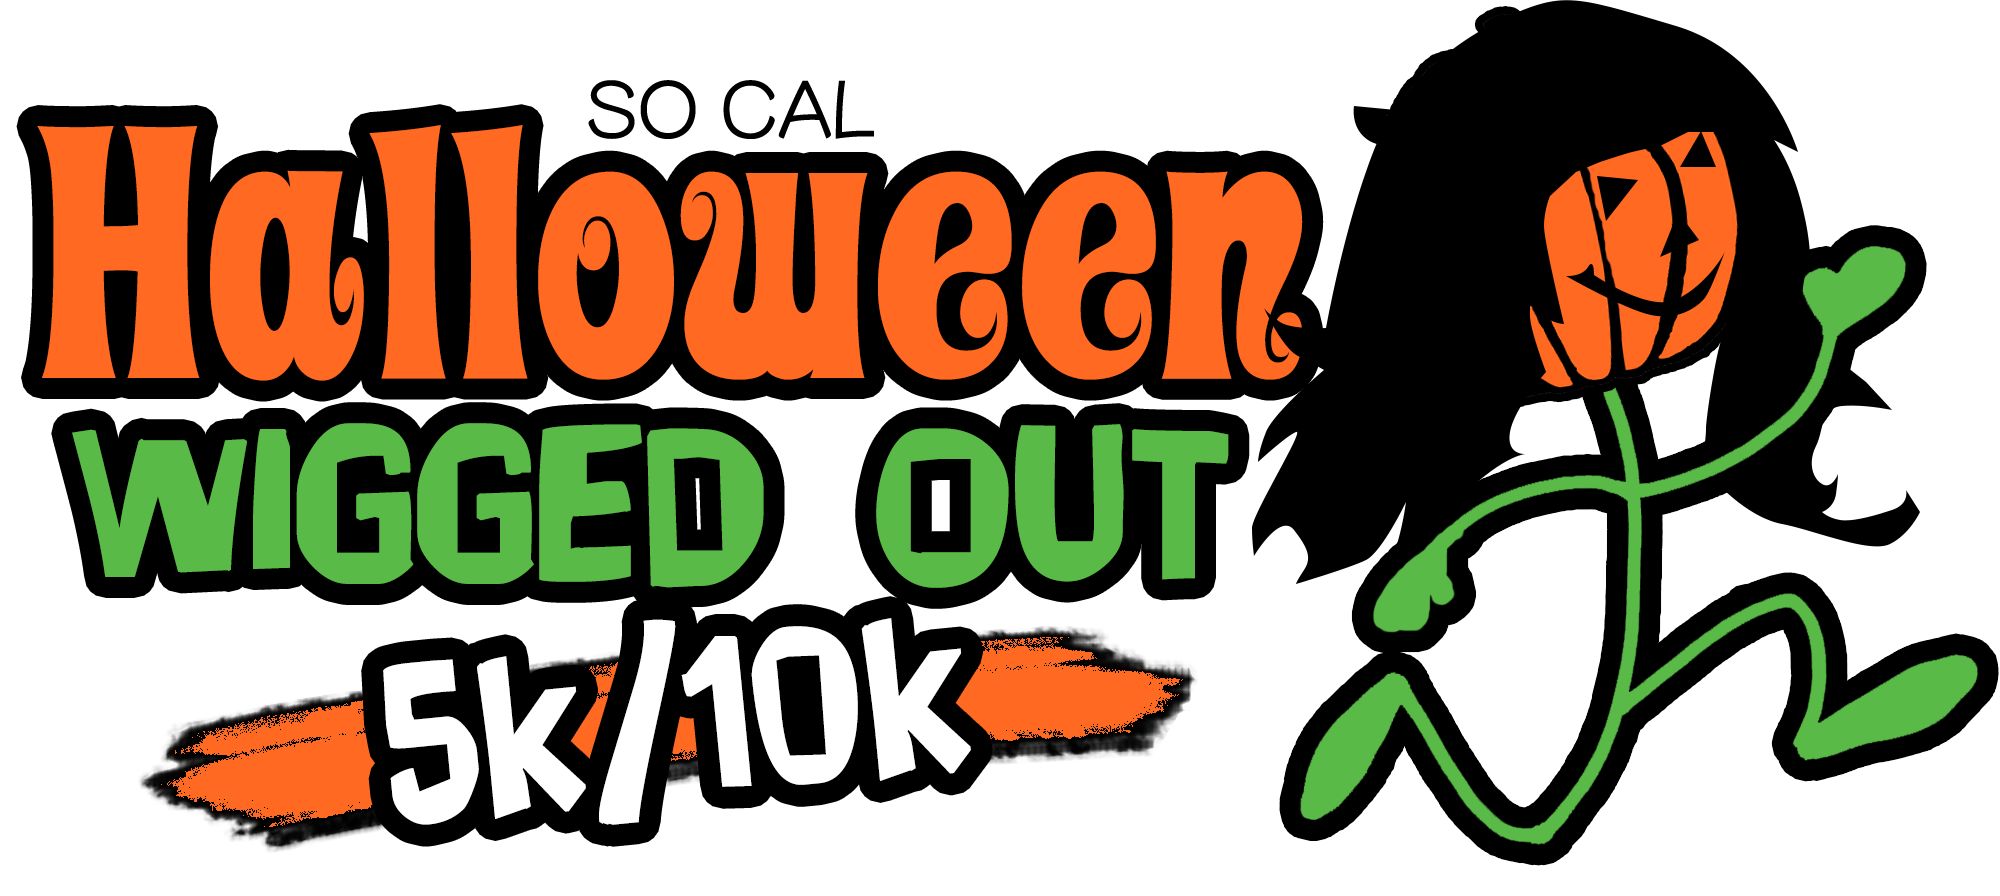 Clipart halloween group. Wigged out k itz